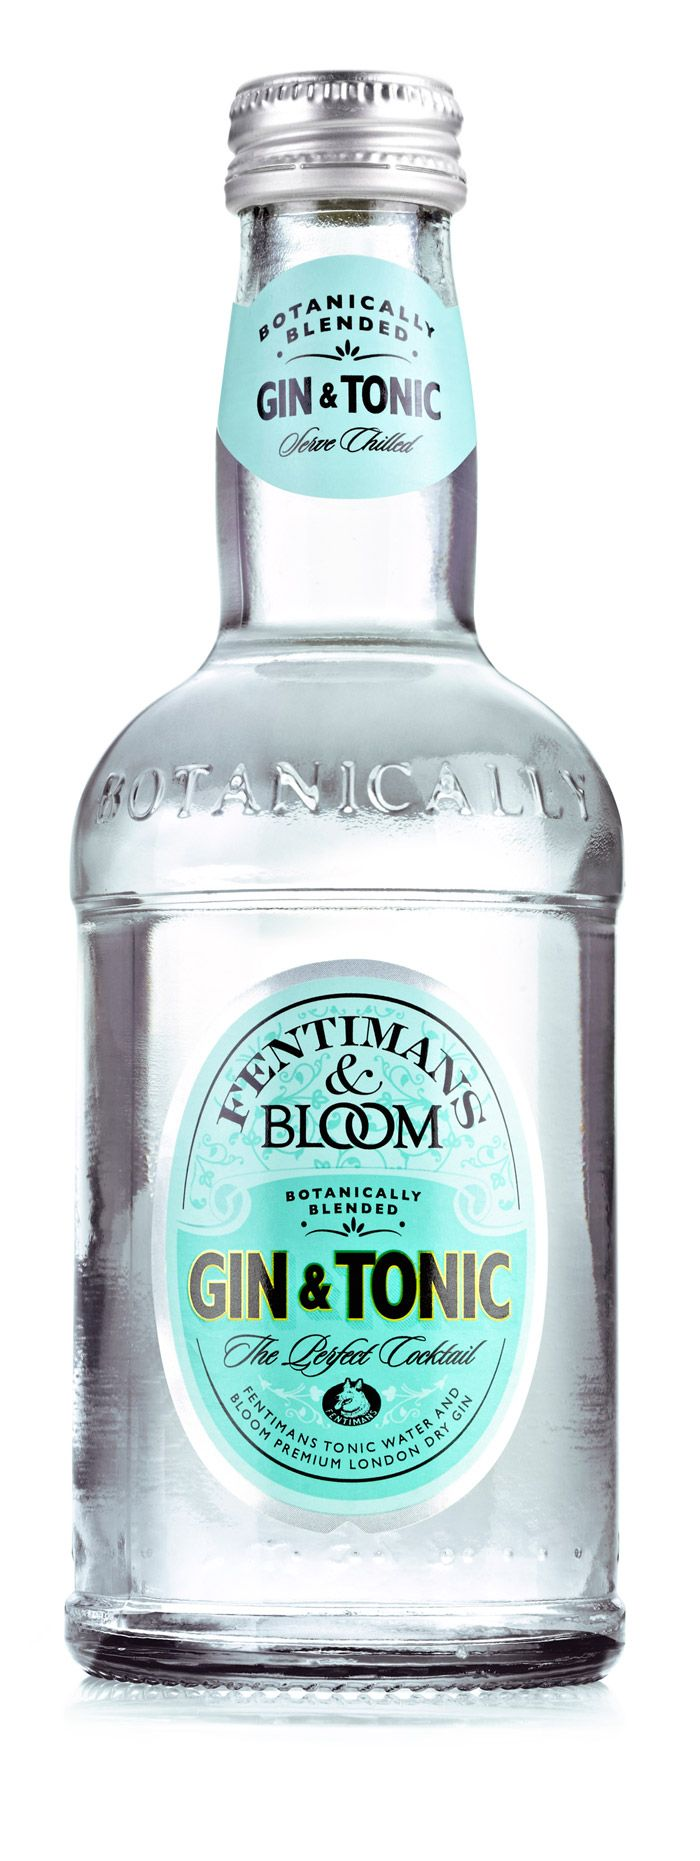 Fentimans & Bloom Gin & Tonic by Keen & Able. Good & Tasty.